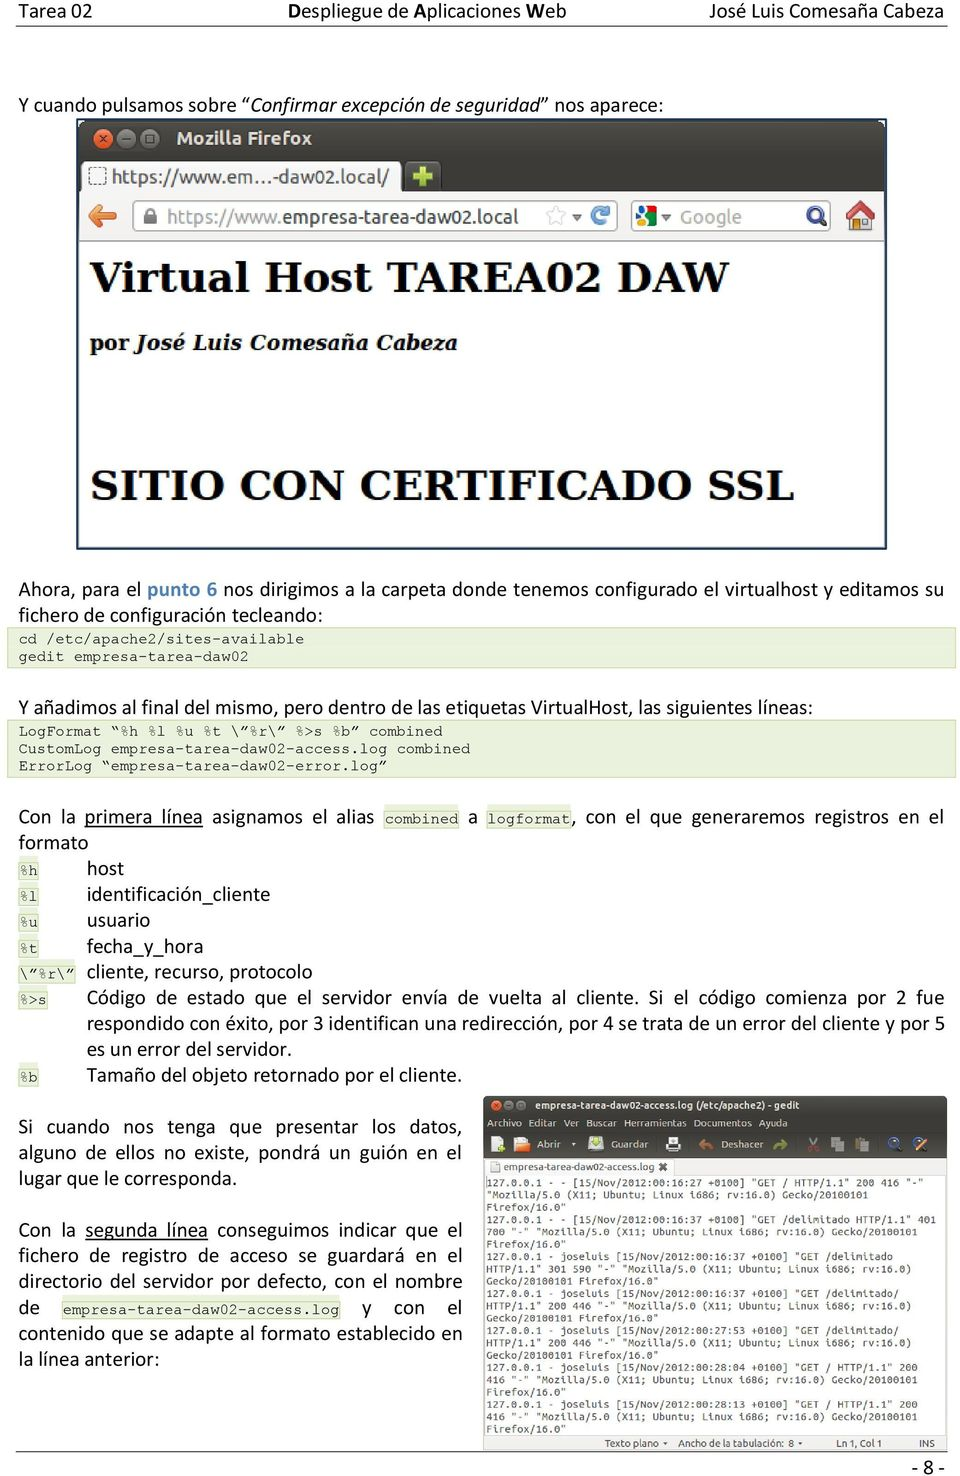 combined CustomLog empresa-tarea-daw02-access.log combined ErrorLog empresa-tarea-daw02-error.